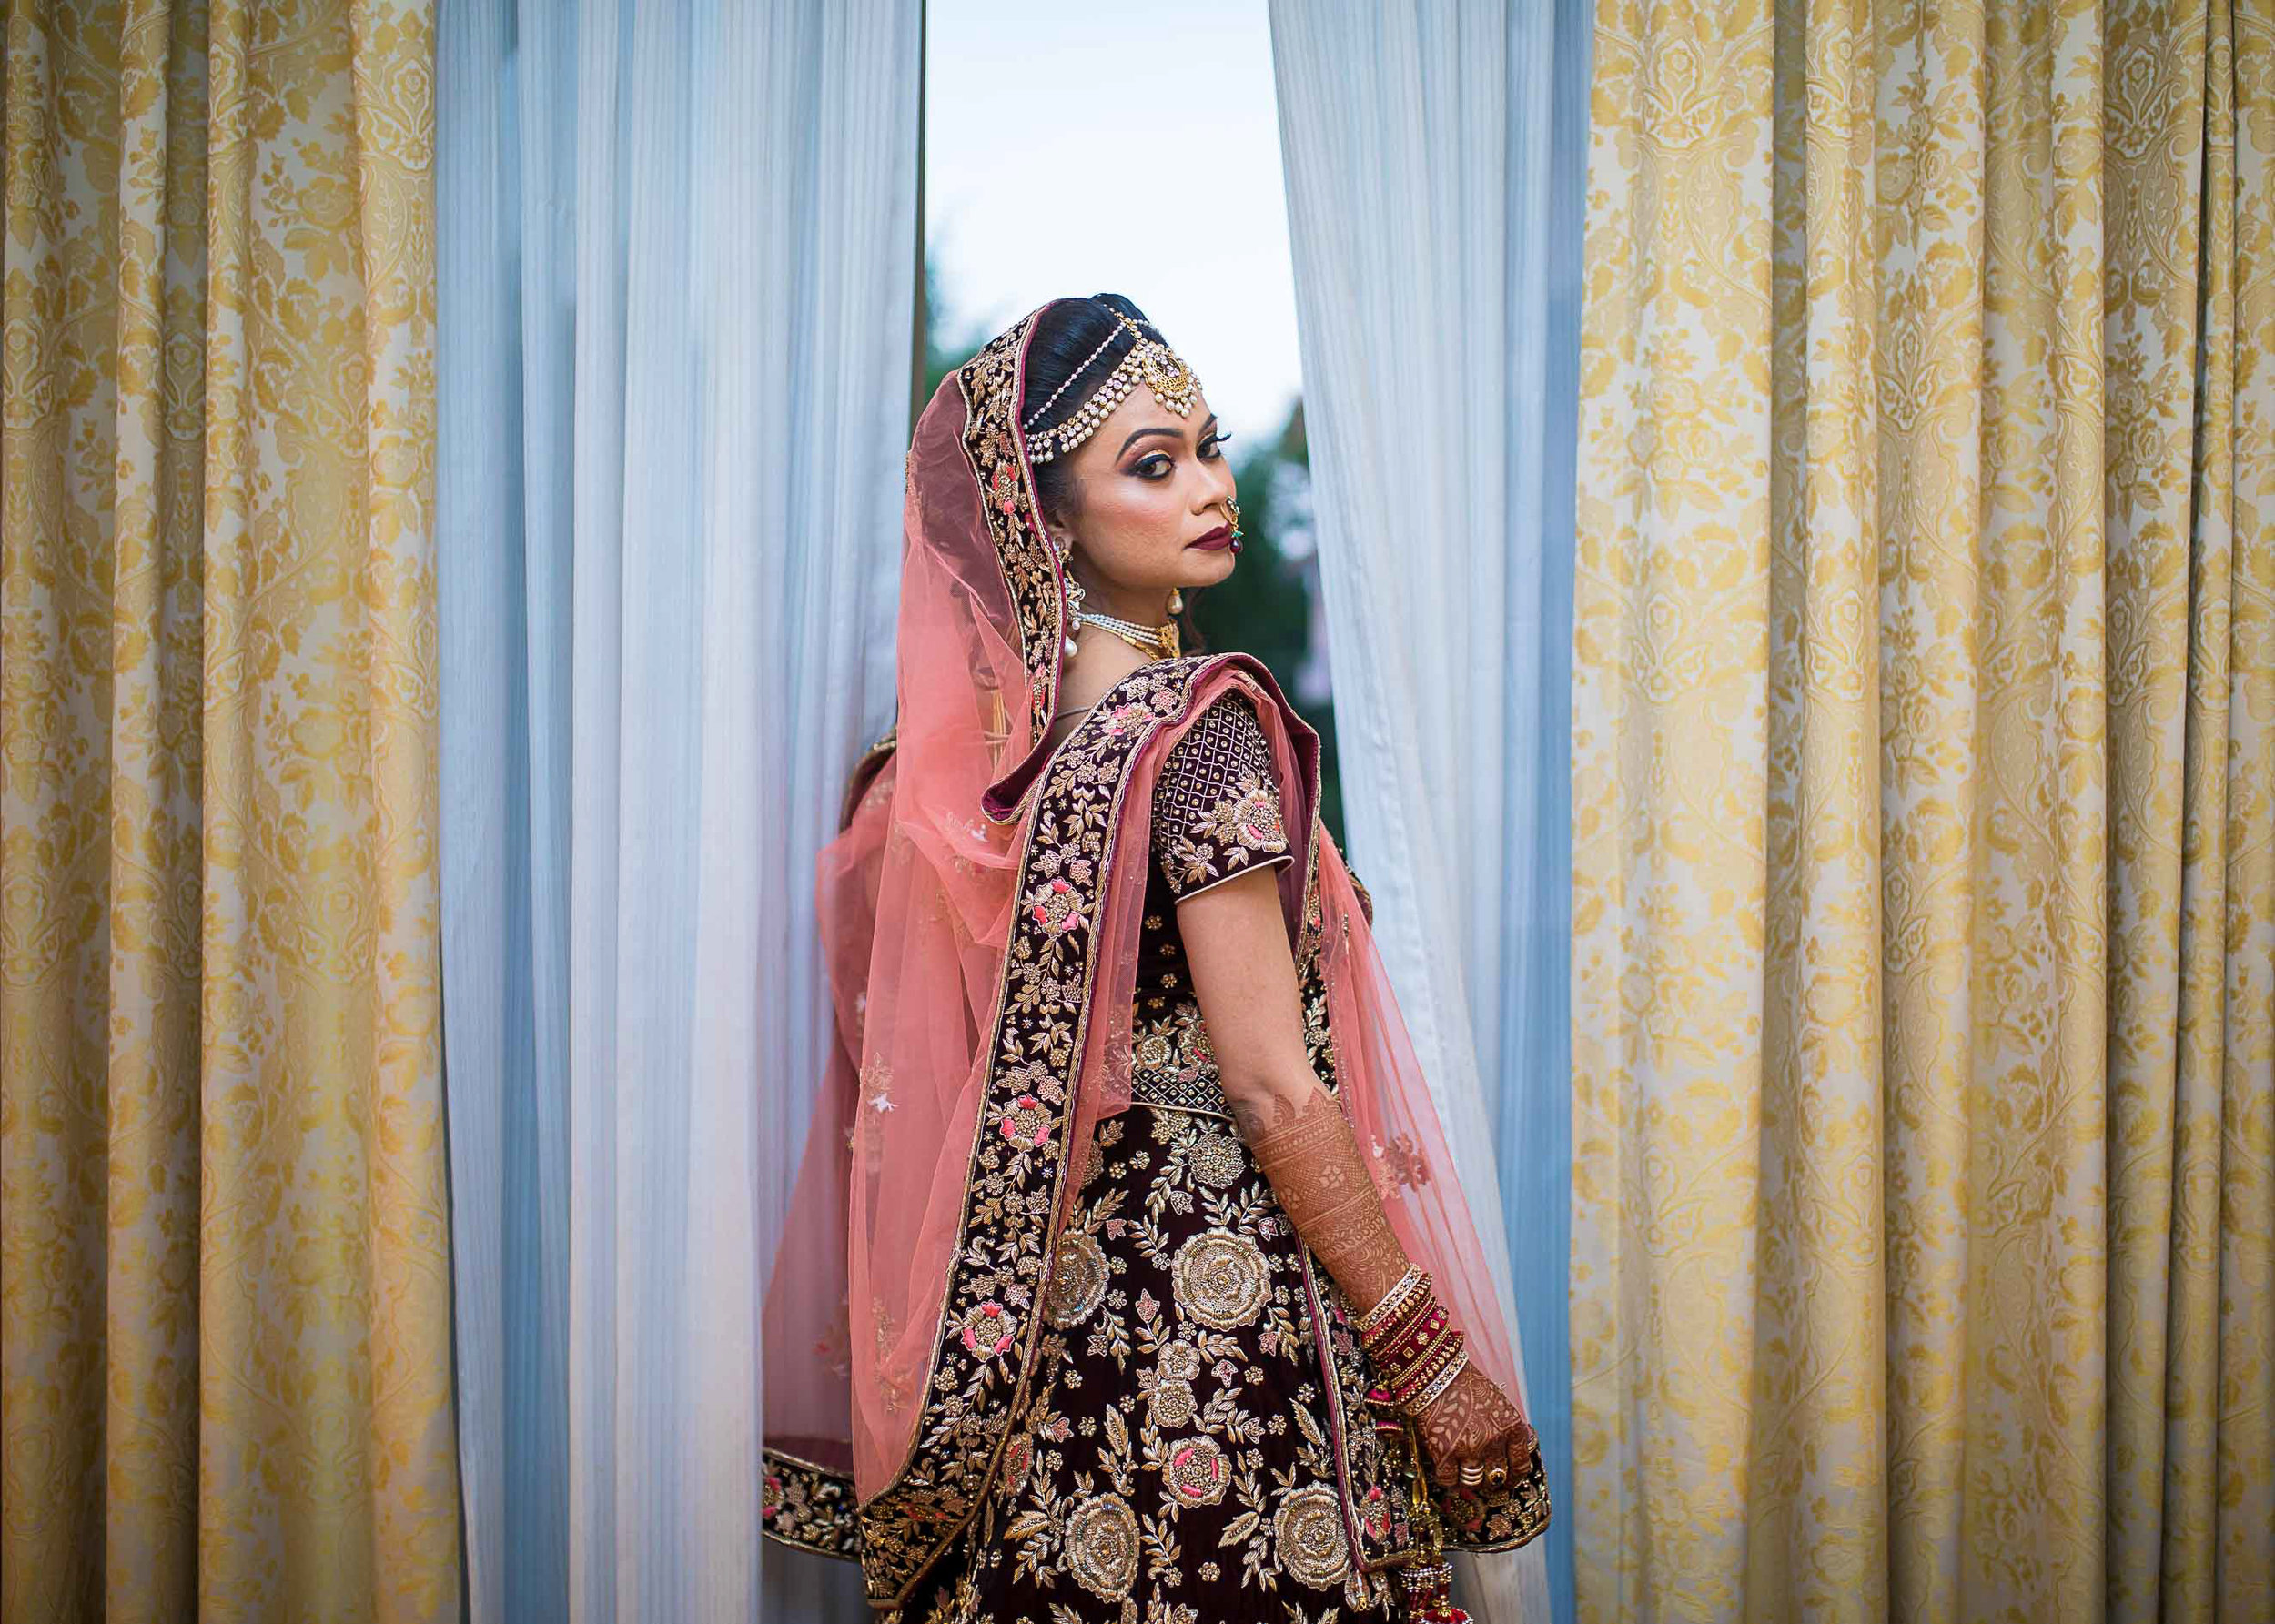 Pixel-Chronicles-Meraj-Yousuf-Candid-Wedding-Documentary-Photography-Beautiful-Bride-Best-Portrait-Muslim-Wedding-Perfect-Shot-Lela-Palace-Best-Photoshoot-76.jpg